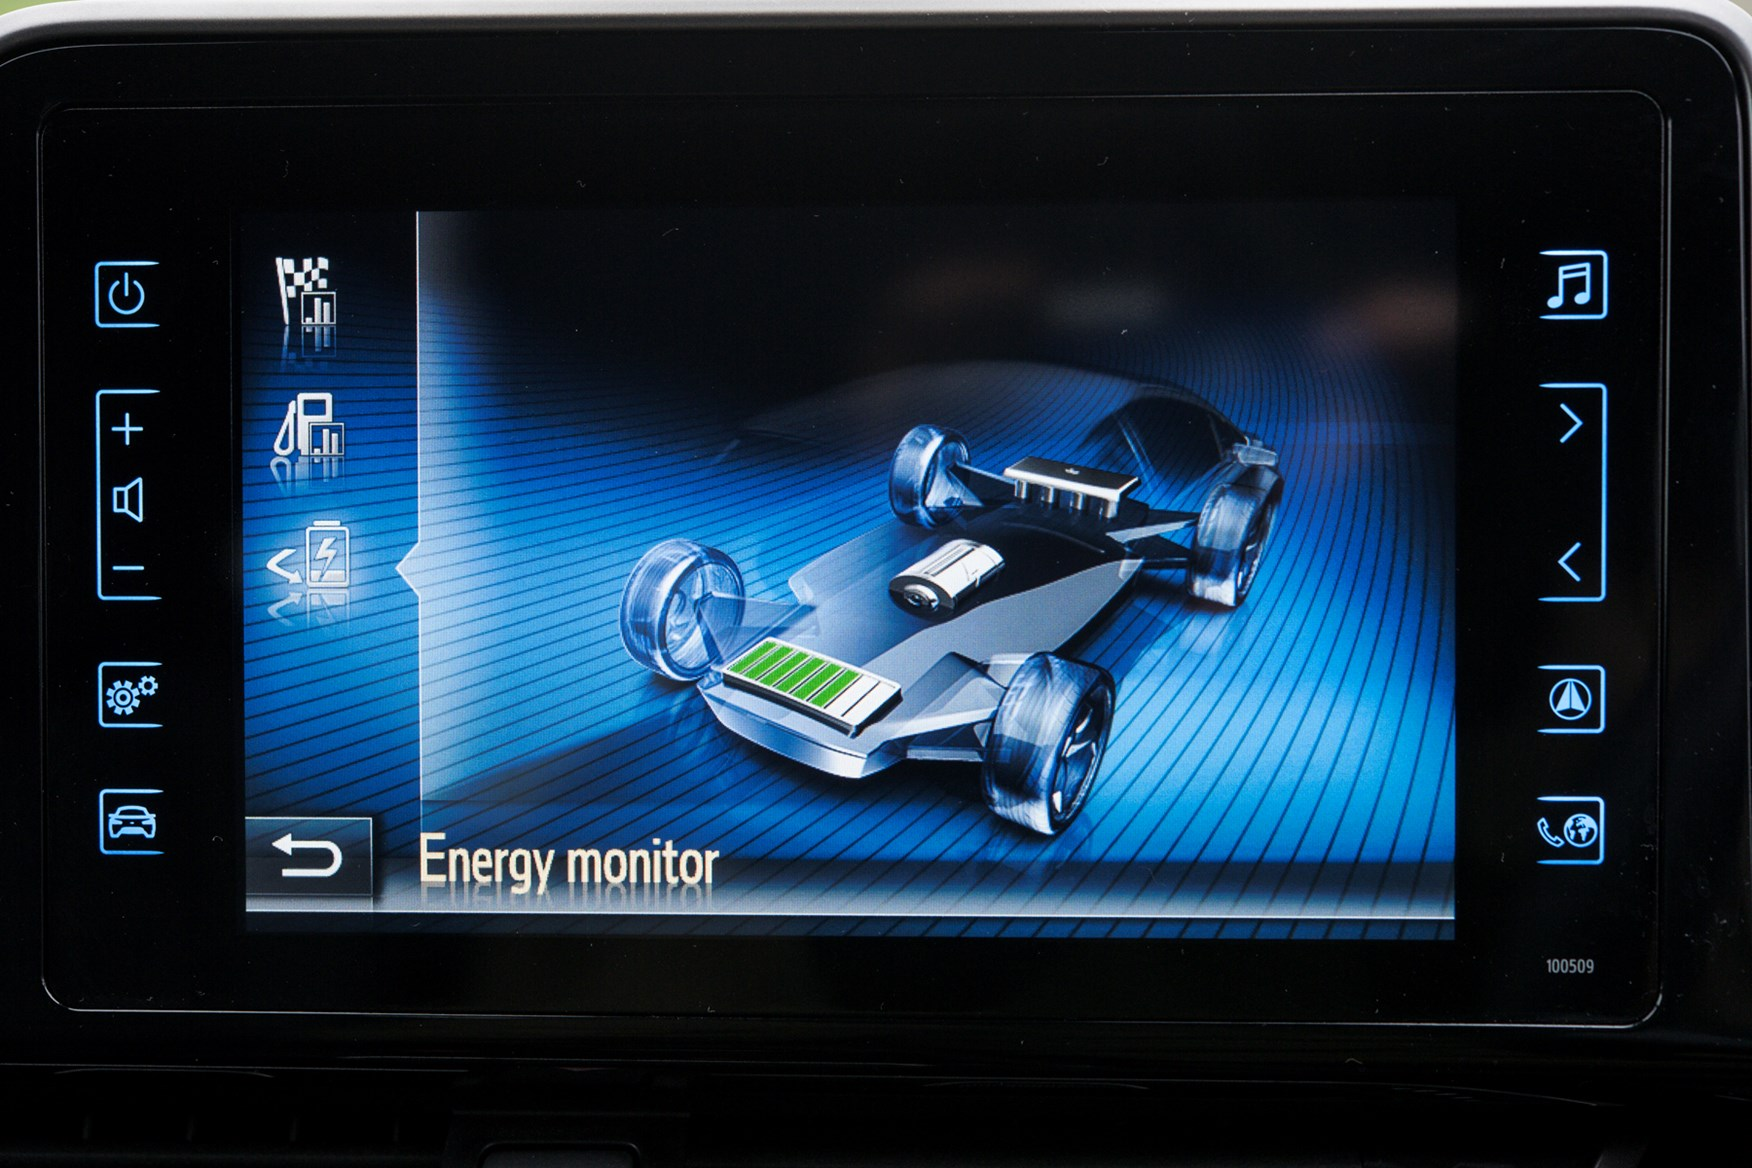 The energy monitor in the Toyota C-HR